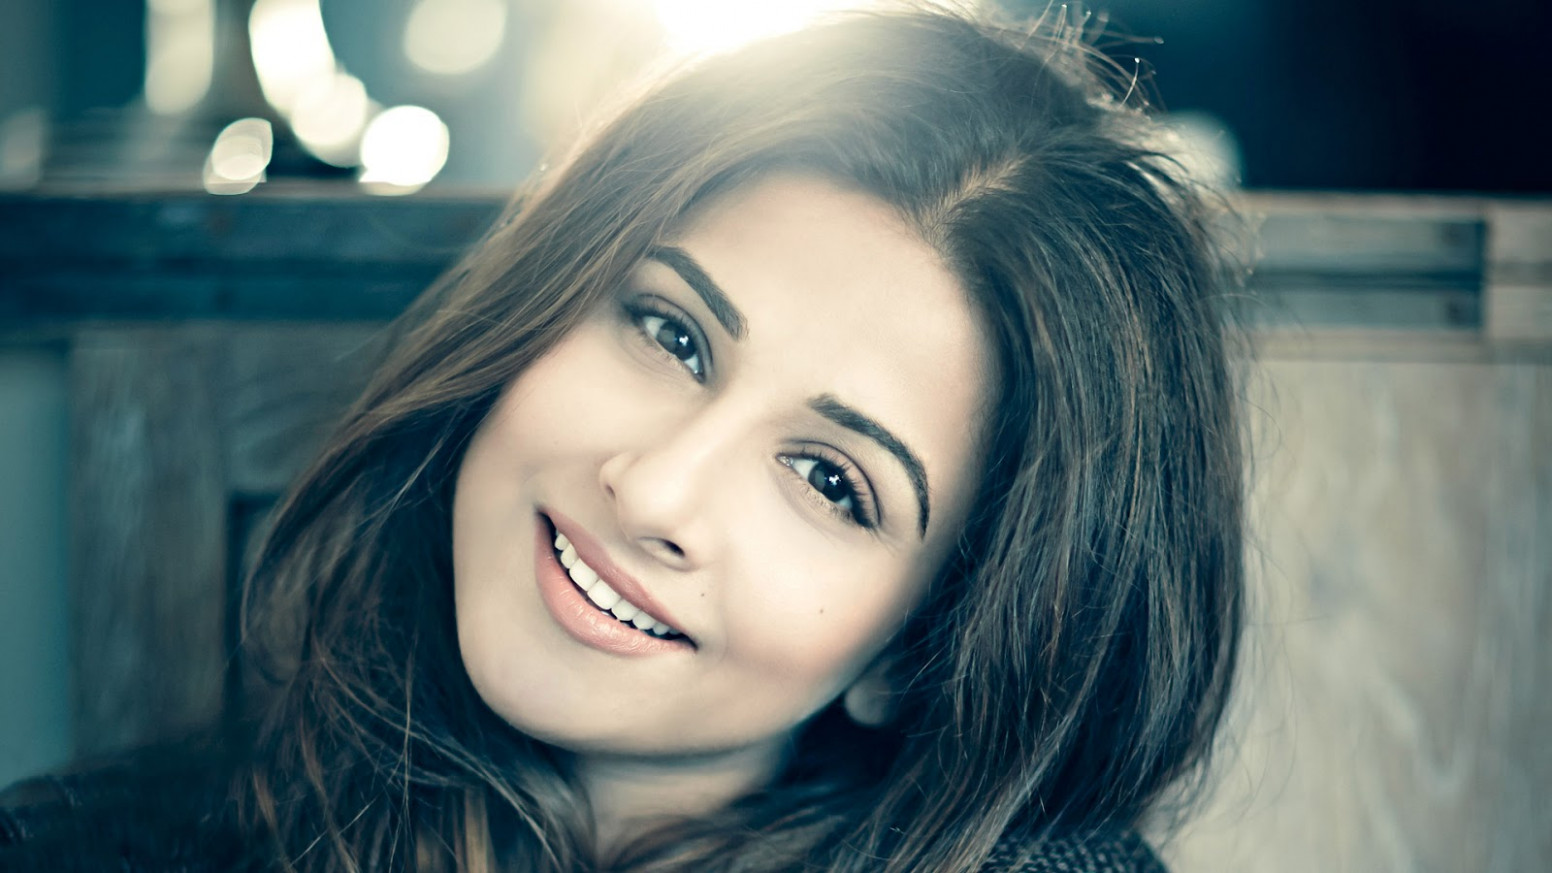 Vidya Balan Wallpapers HD Download Free 1080p ...